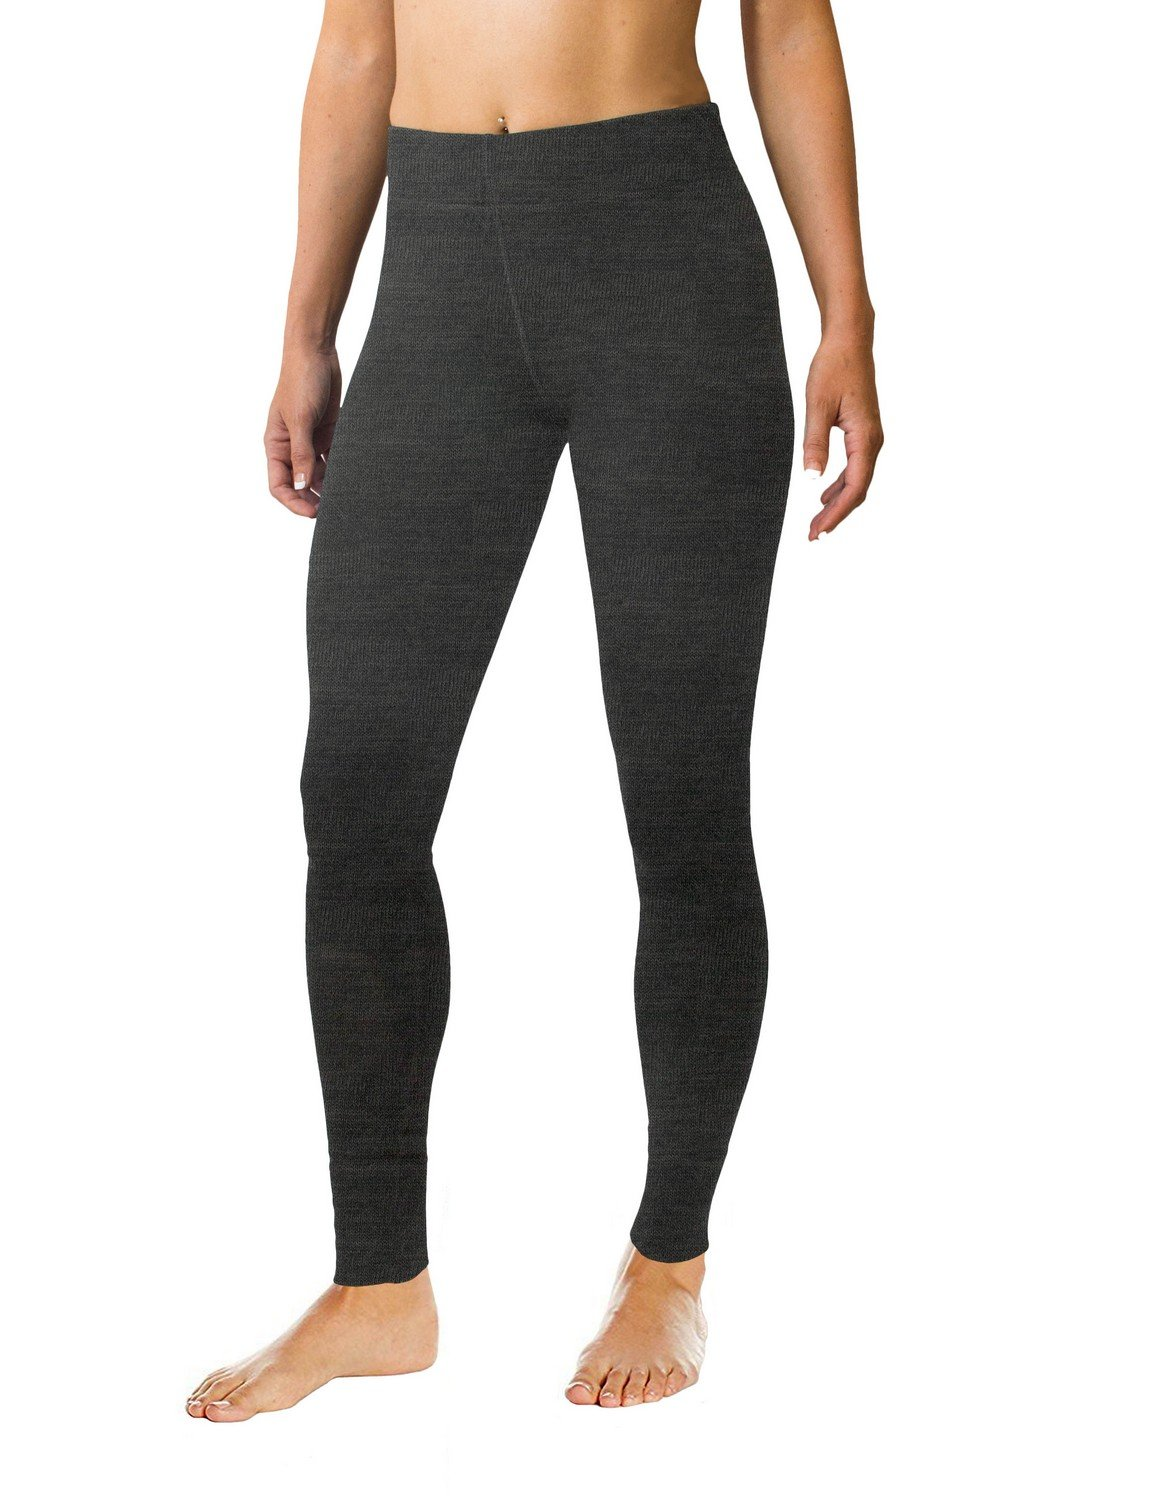 Woolx Women's Avery Midweight Merino Wool Base Layer Leggings For Warmth, Charcoal Heather, X-Small